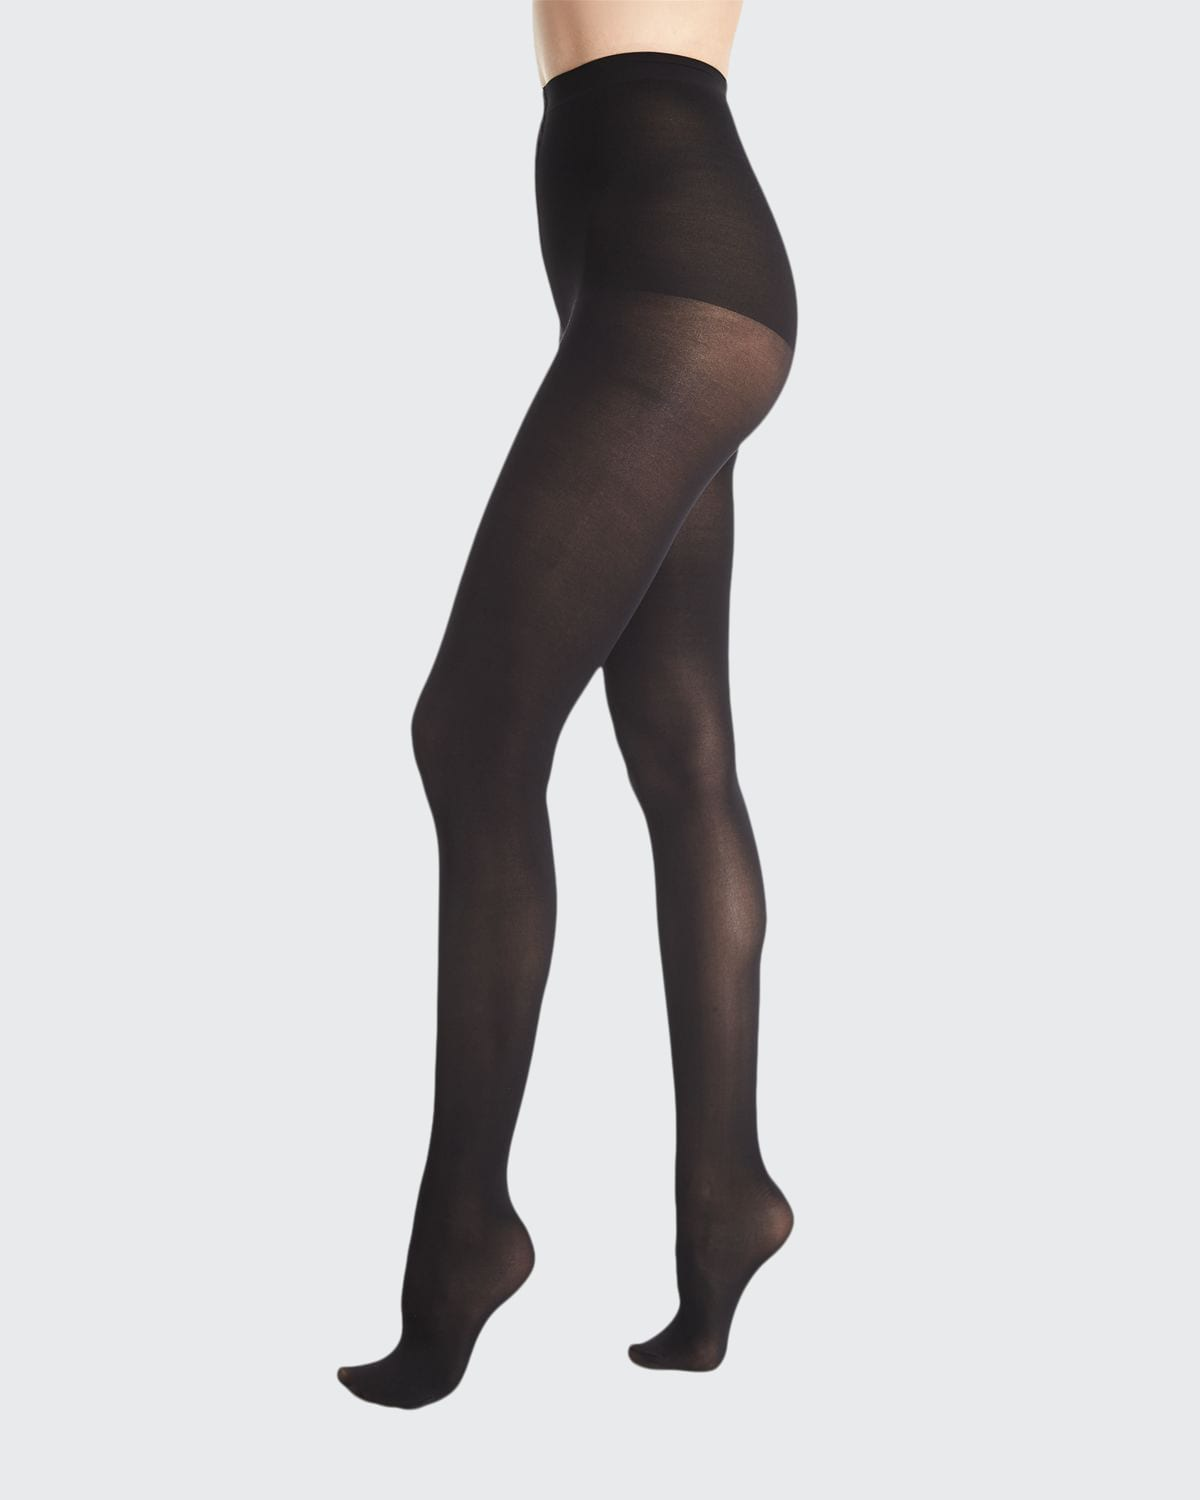 The Luxe Opaque Bodystocking Tights